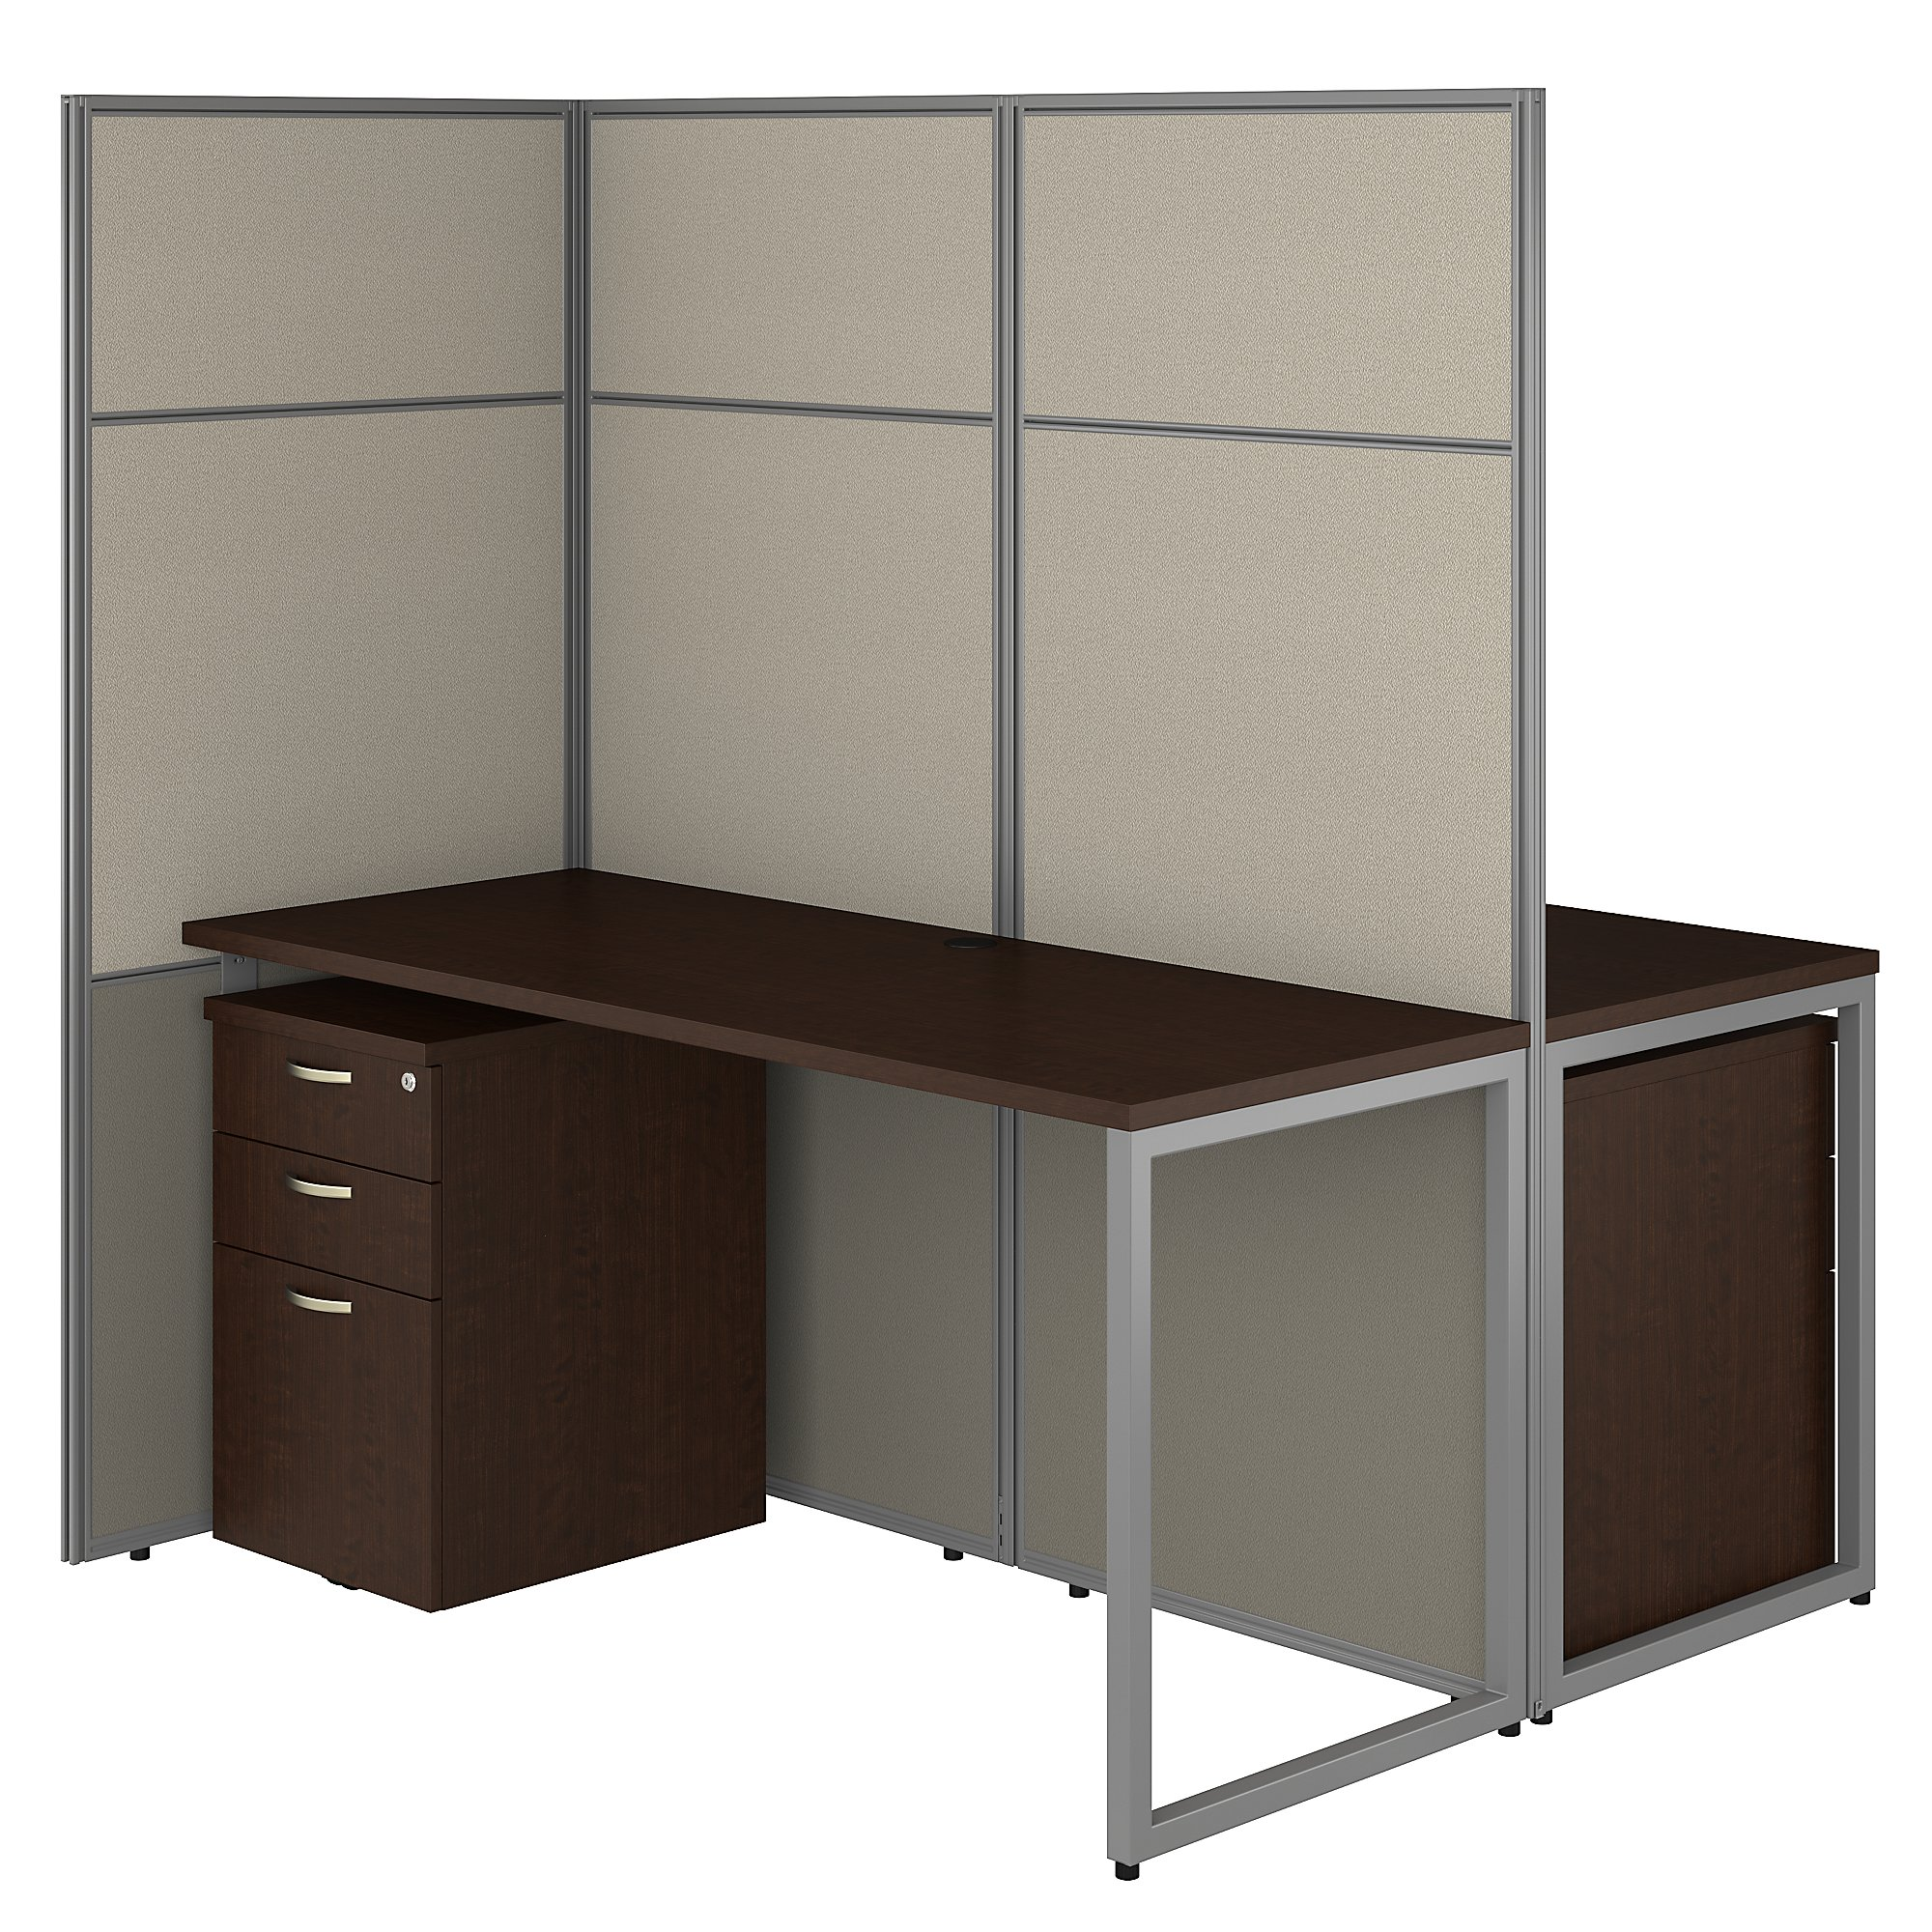 mocha cherry bush business furniture easy office 2 person privacy cubicle